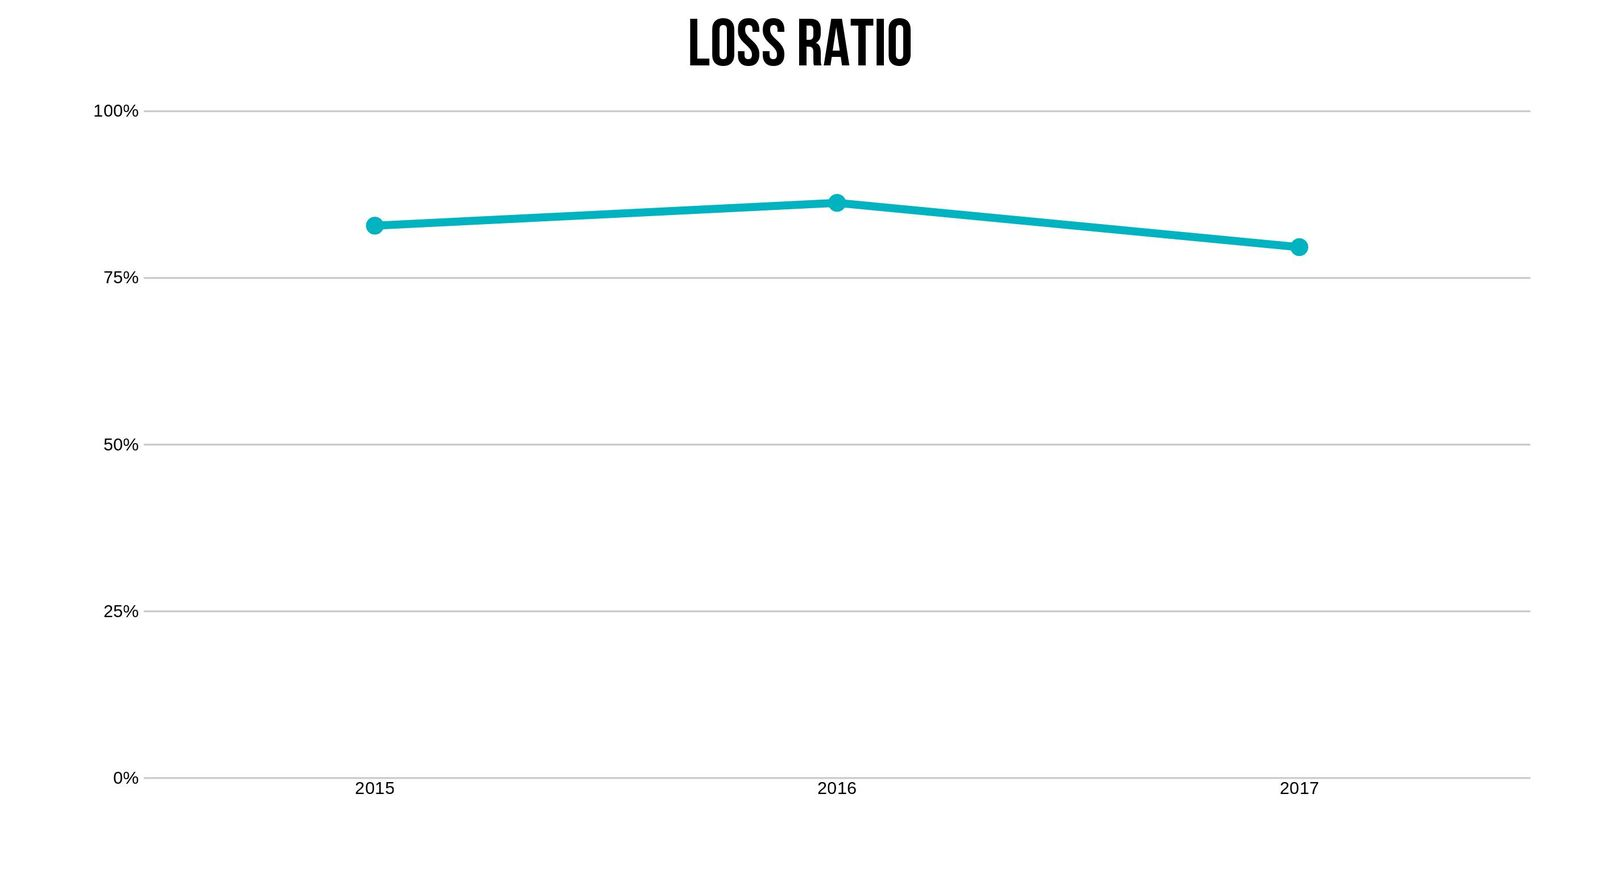 USAA loss ratio trend